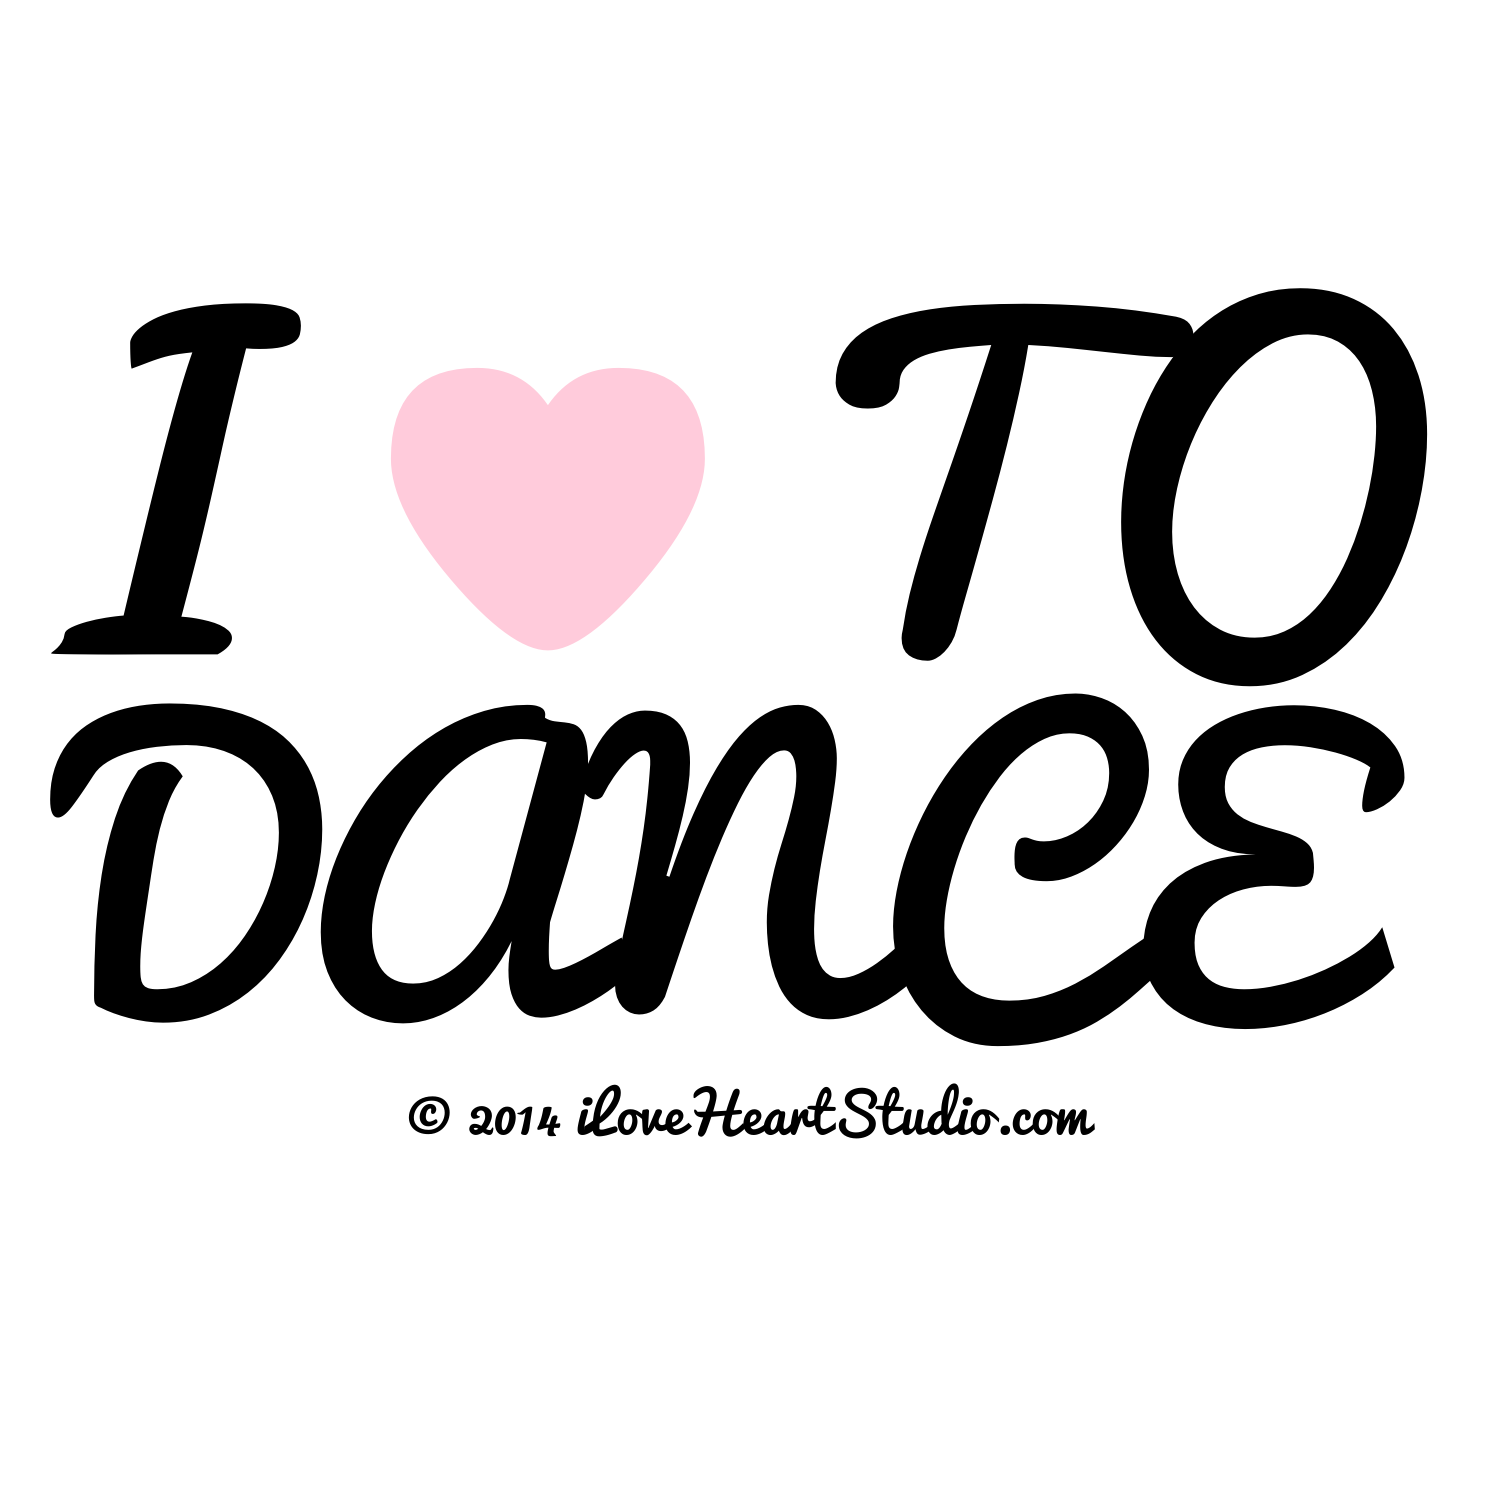 i heart dance wallpapers - photo #48